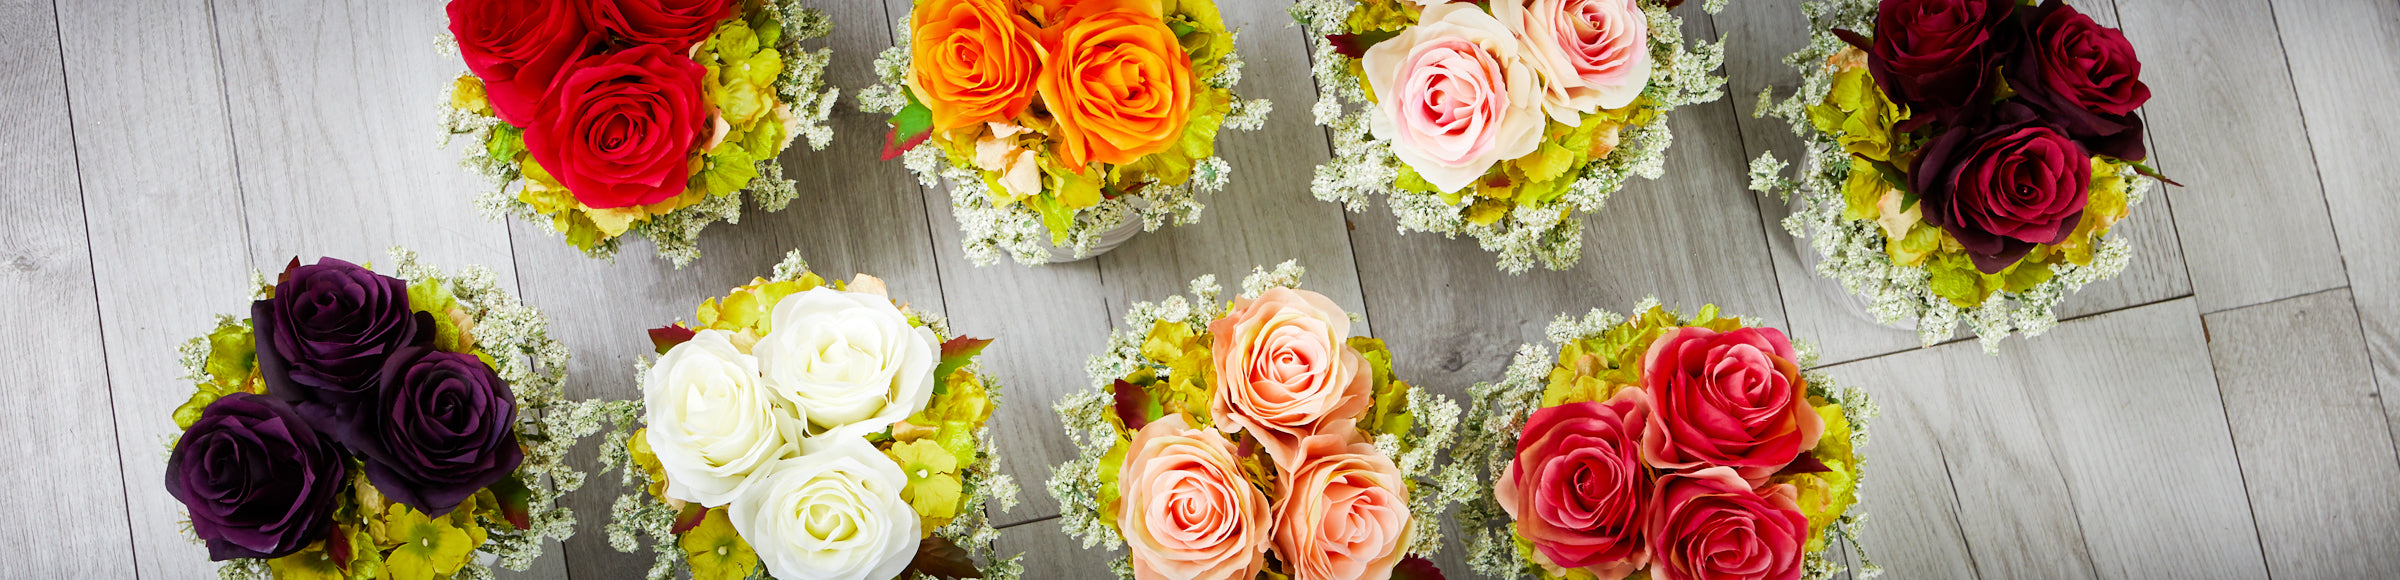 Dropshipping Wholesalers for Artificial Flowers and Plants | Nearly